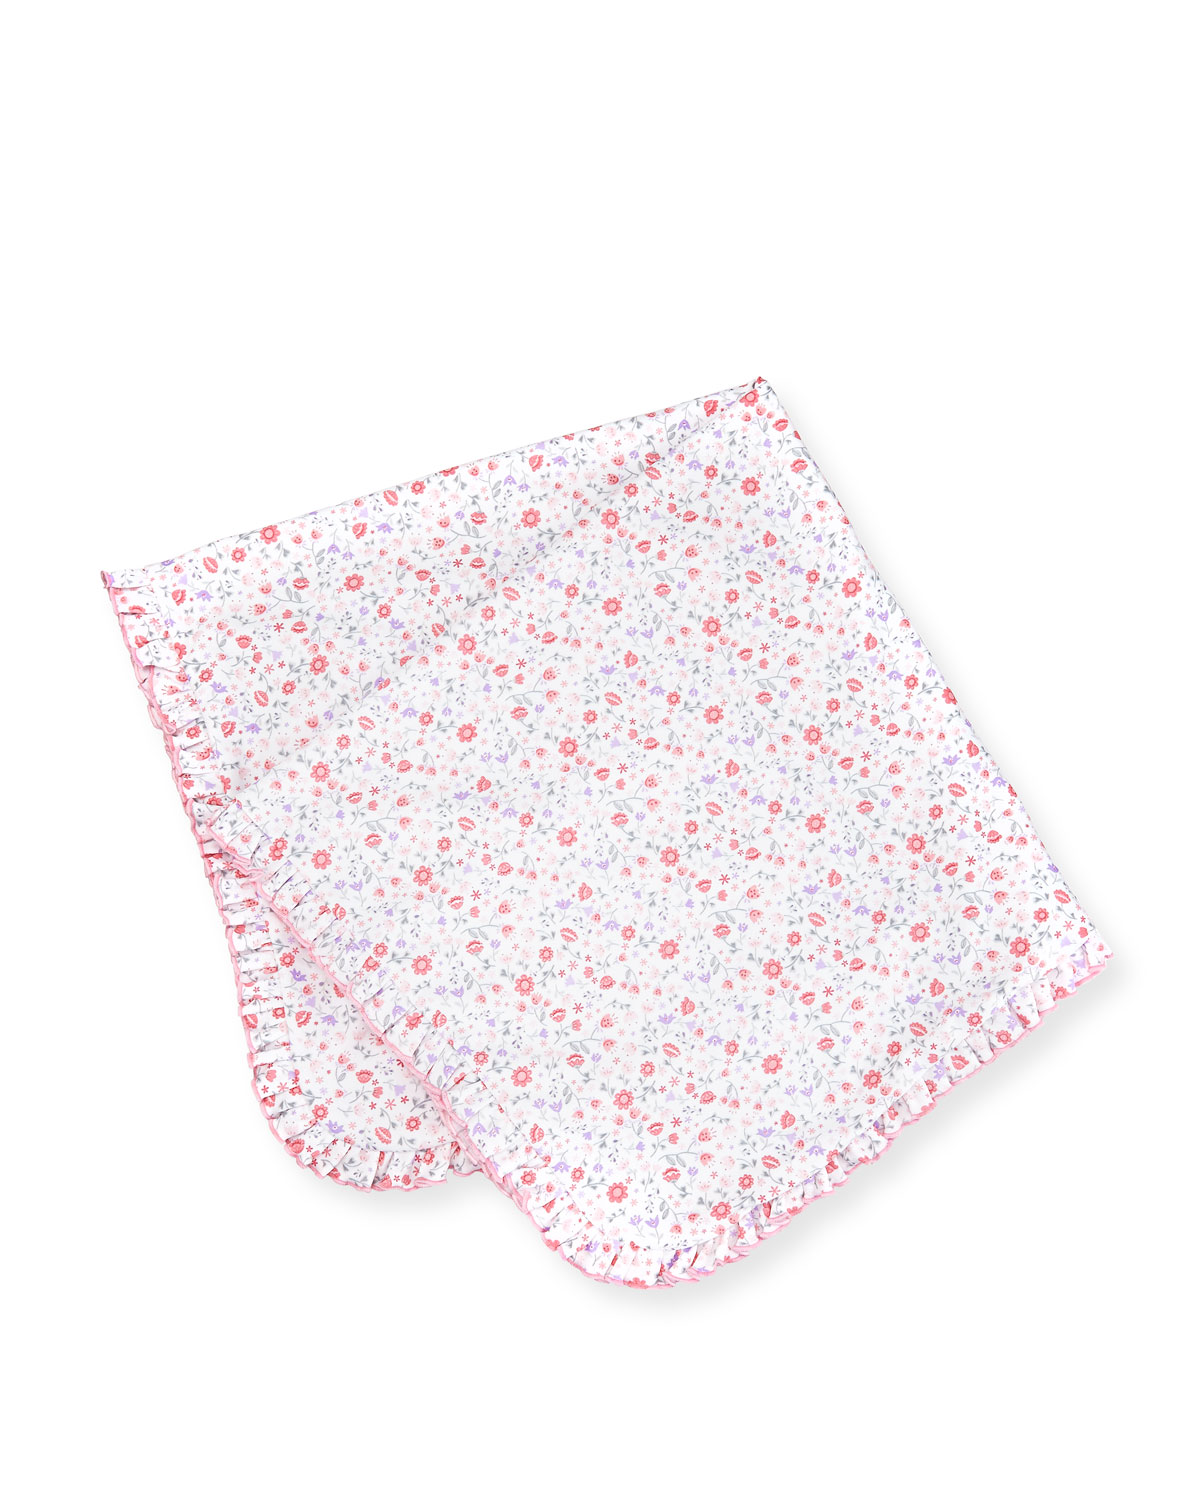 Fall Blossoms Pima Blanket, Pink